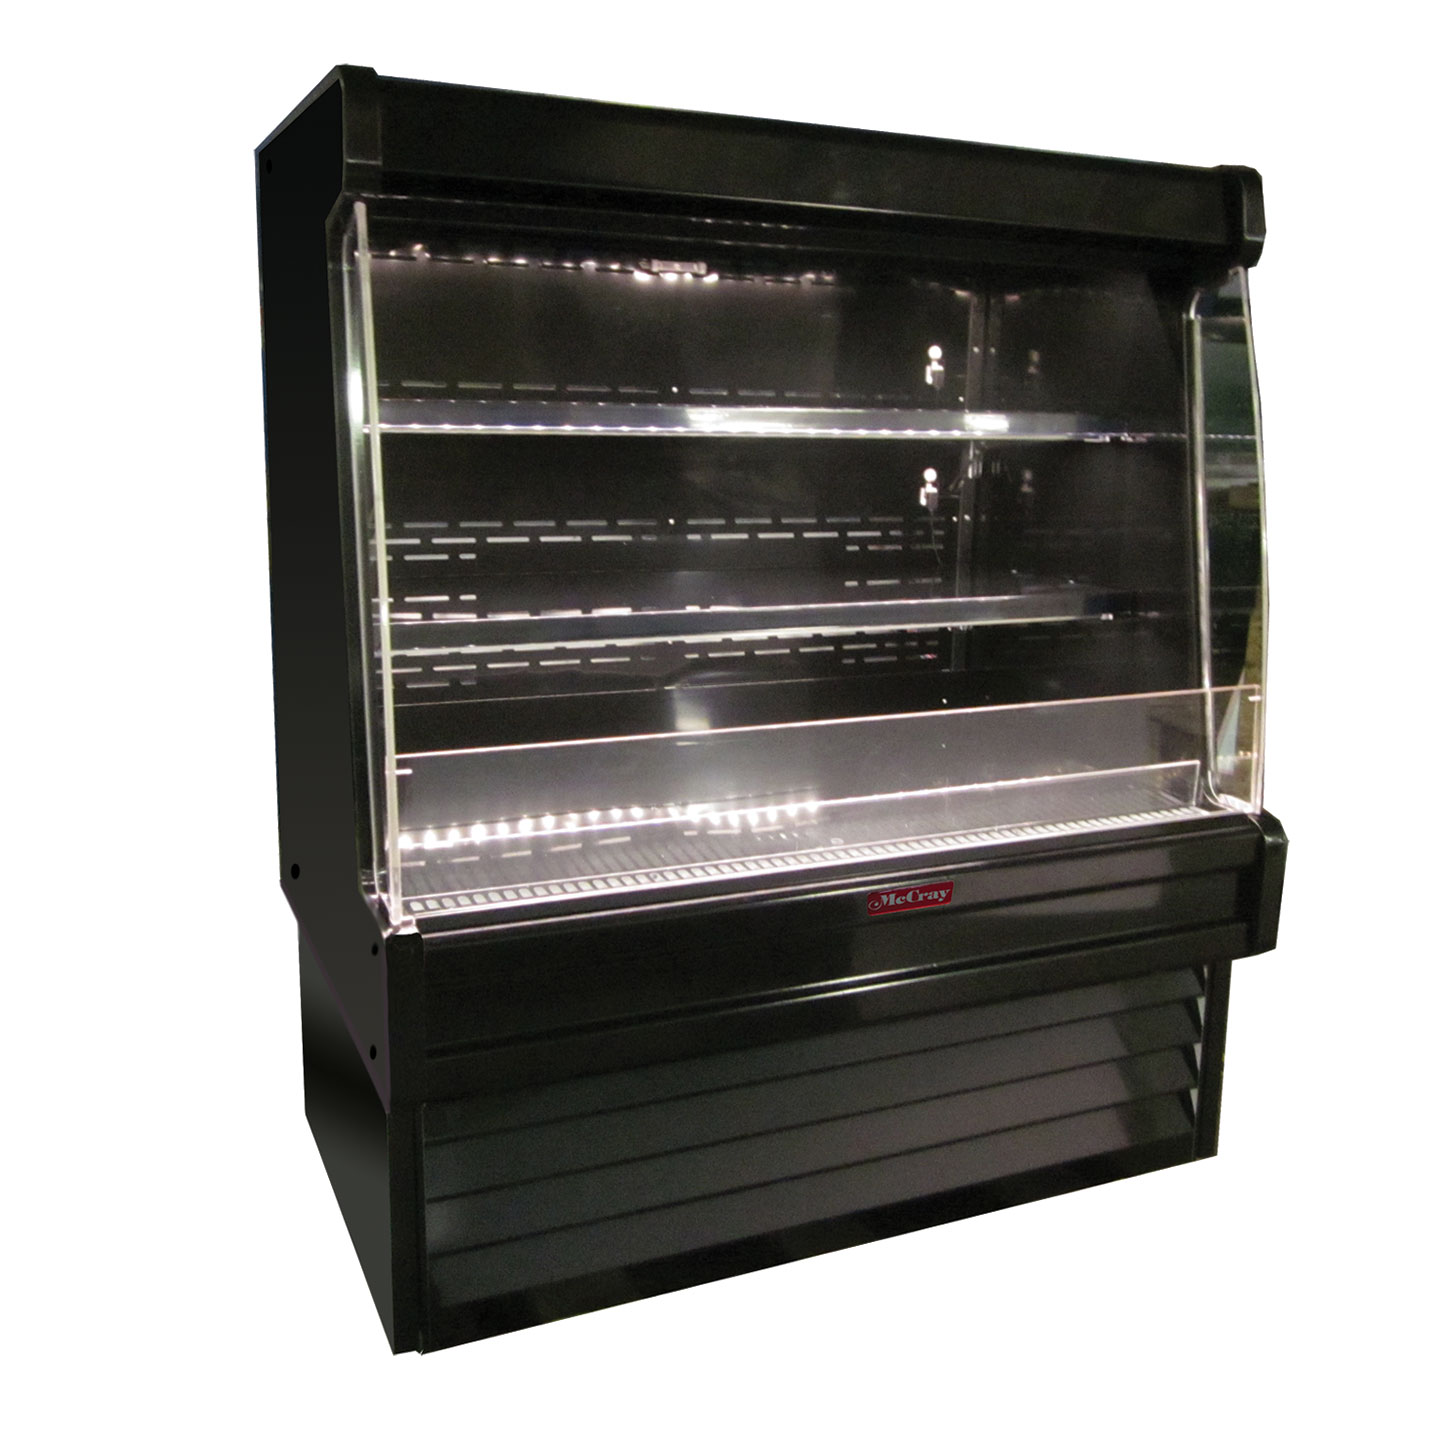 Howard-McCray SC-OP35E-4L-S-LED display case, produce